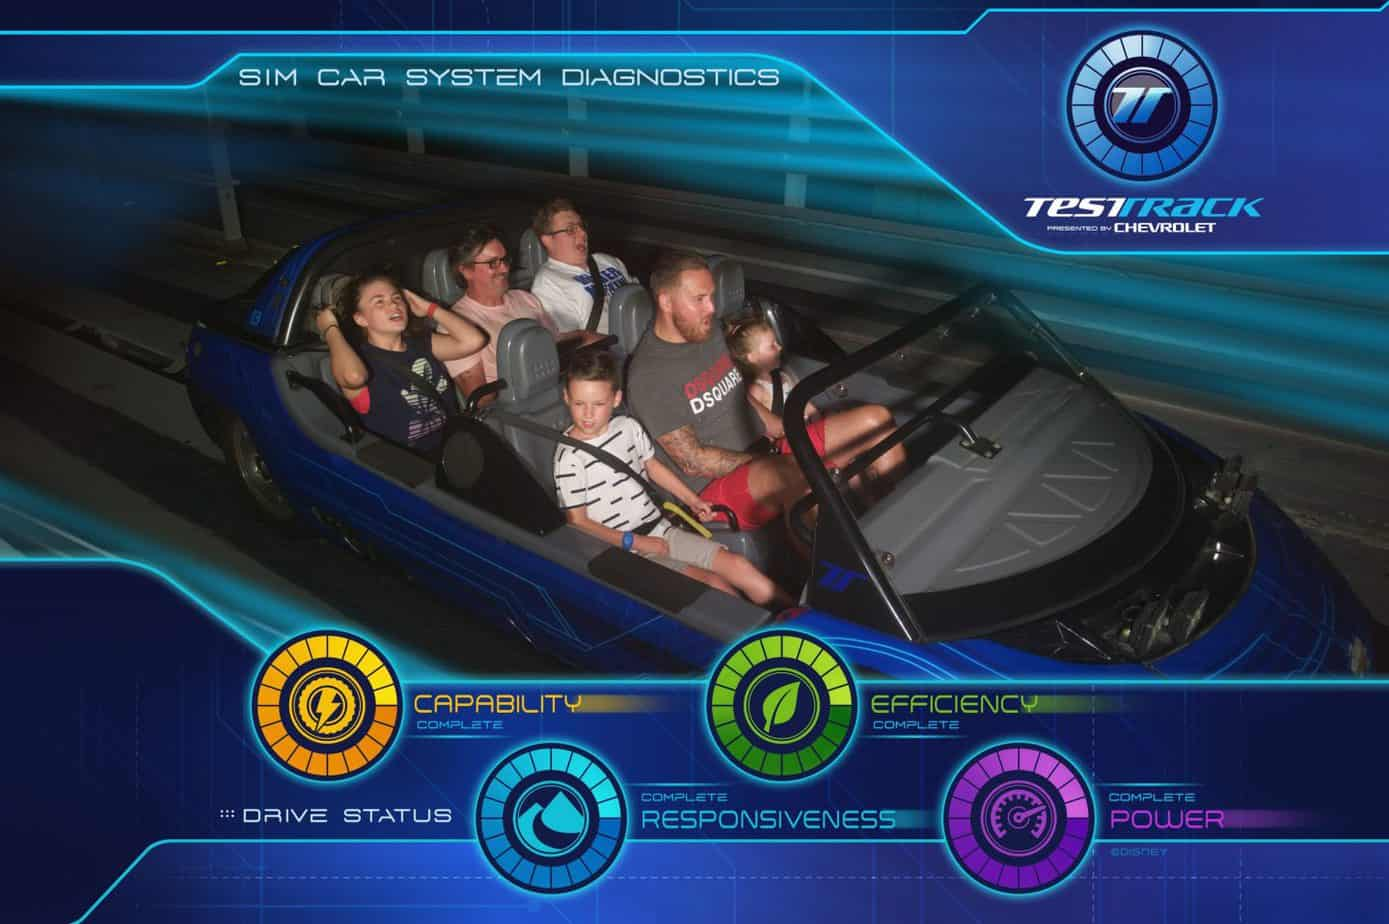 Test Track ride photo photo pass